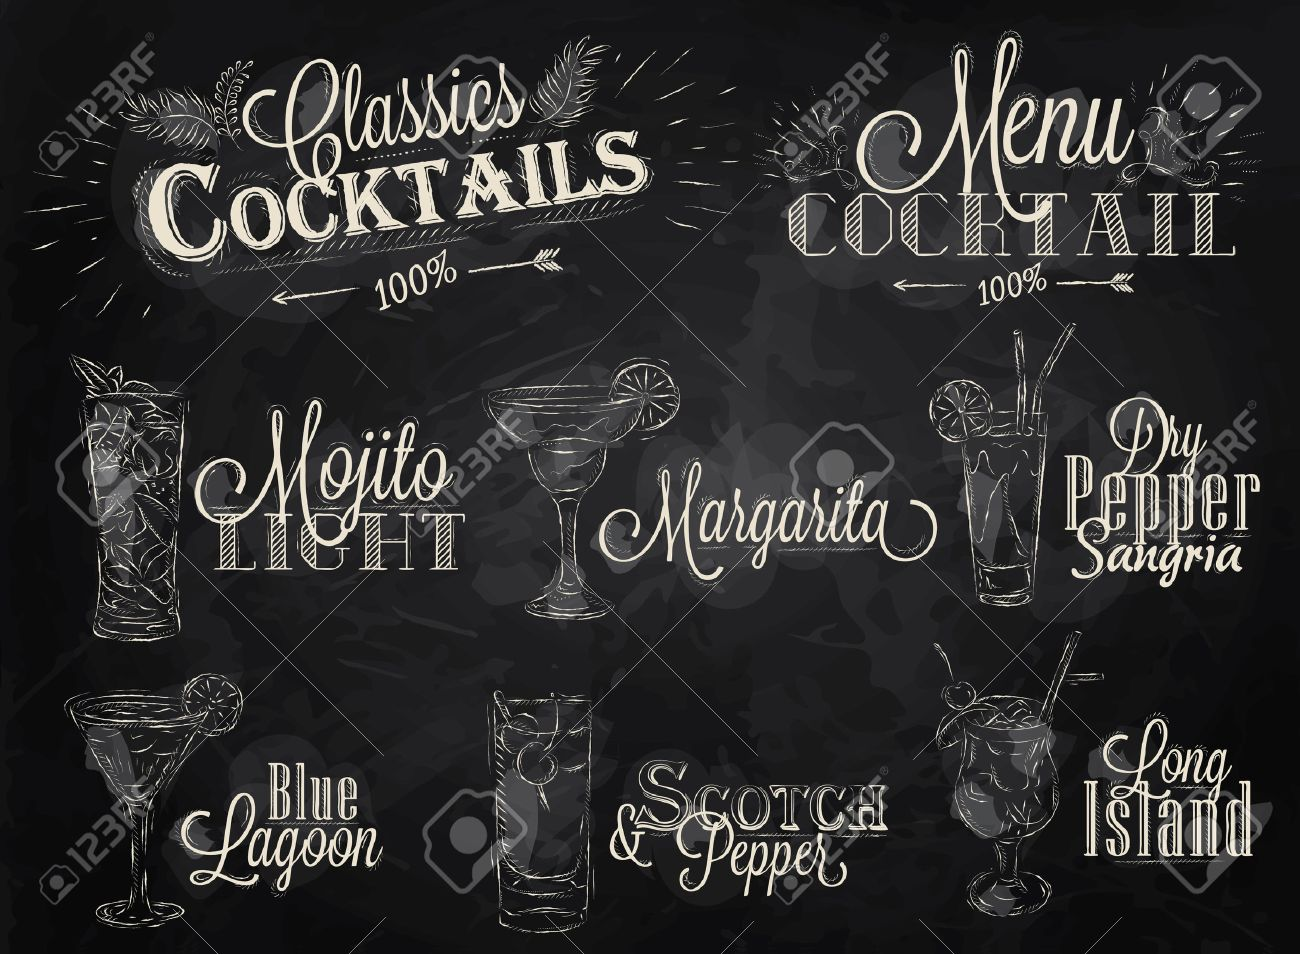 Set of cocktail menu in vintage style stylized drawing with chalk on blackboard, Cocktails with illustrated, the blue lagoon margarita Scotch - 25699859